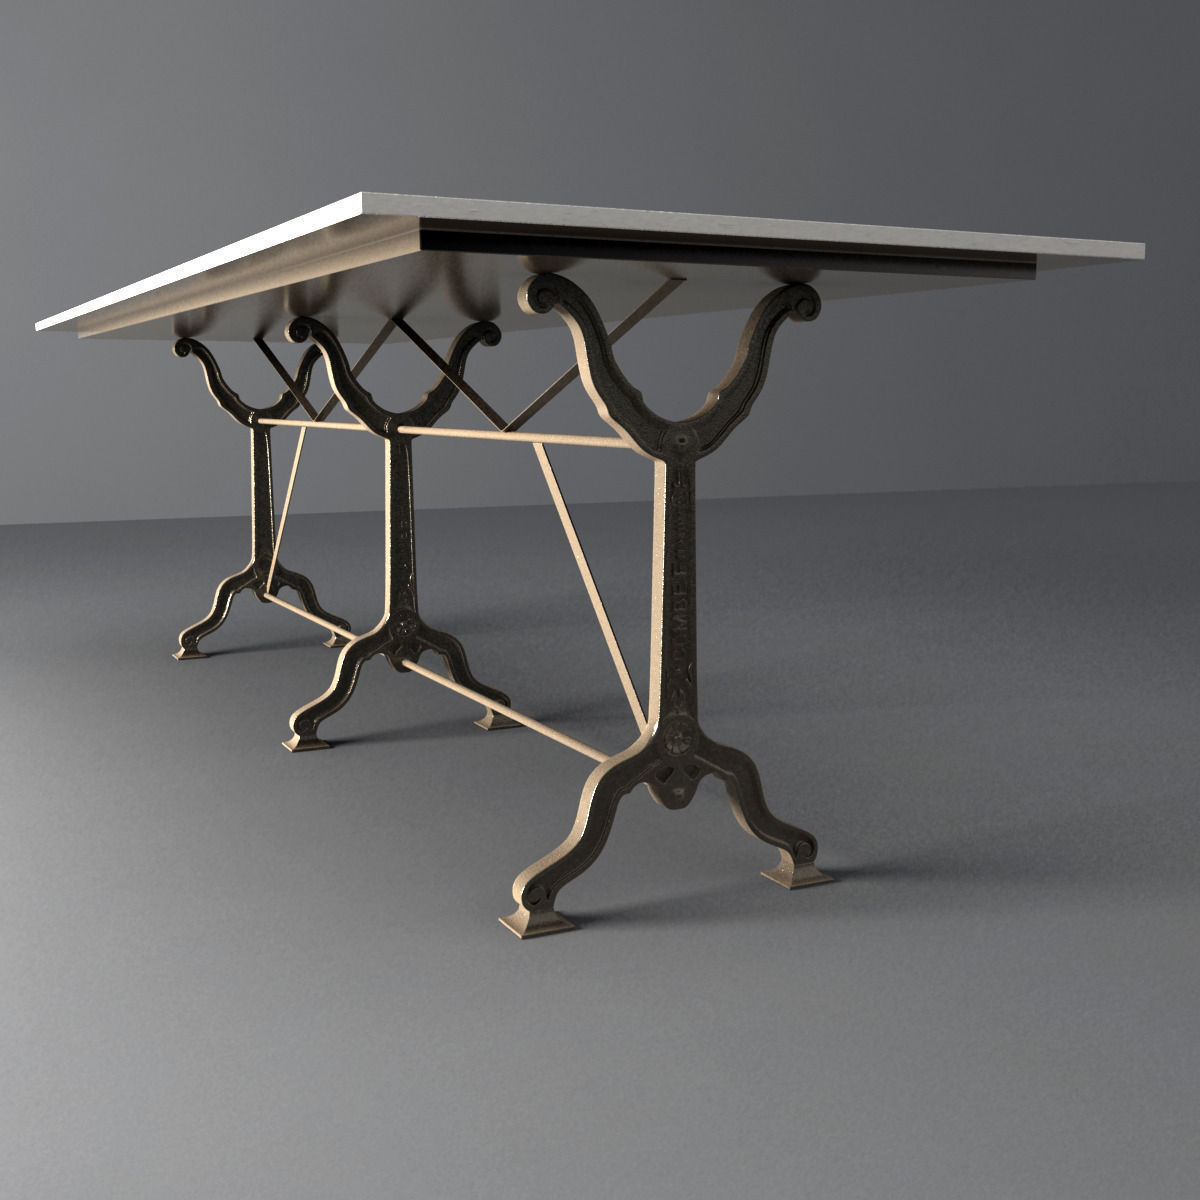 Dining Table Models restoration hardware factory zinc cast iron dining tables 3d model